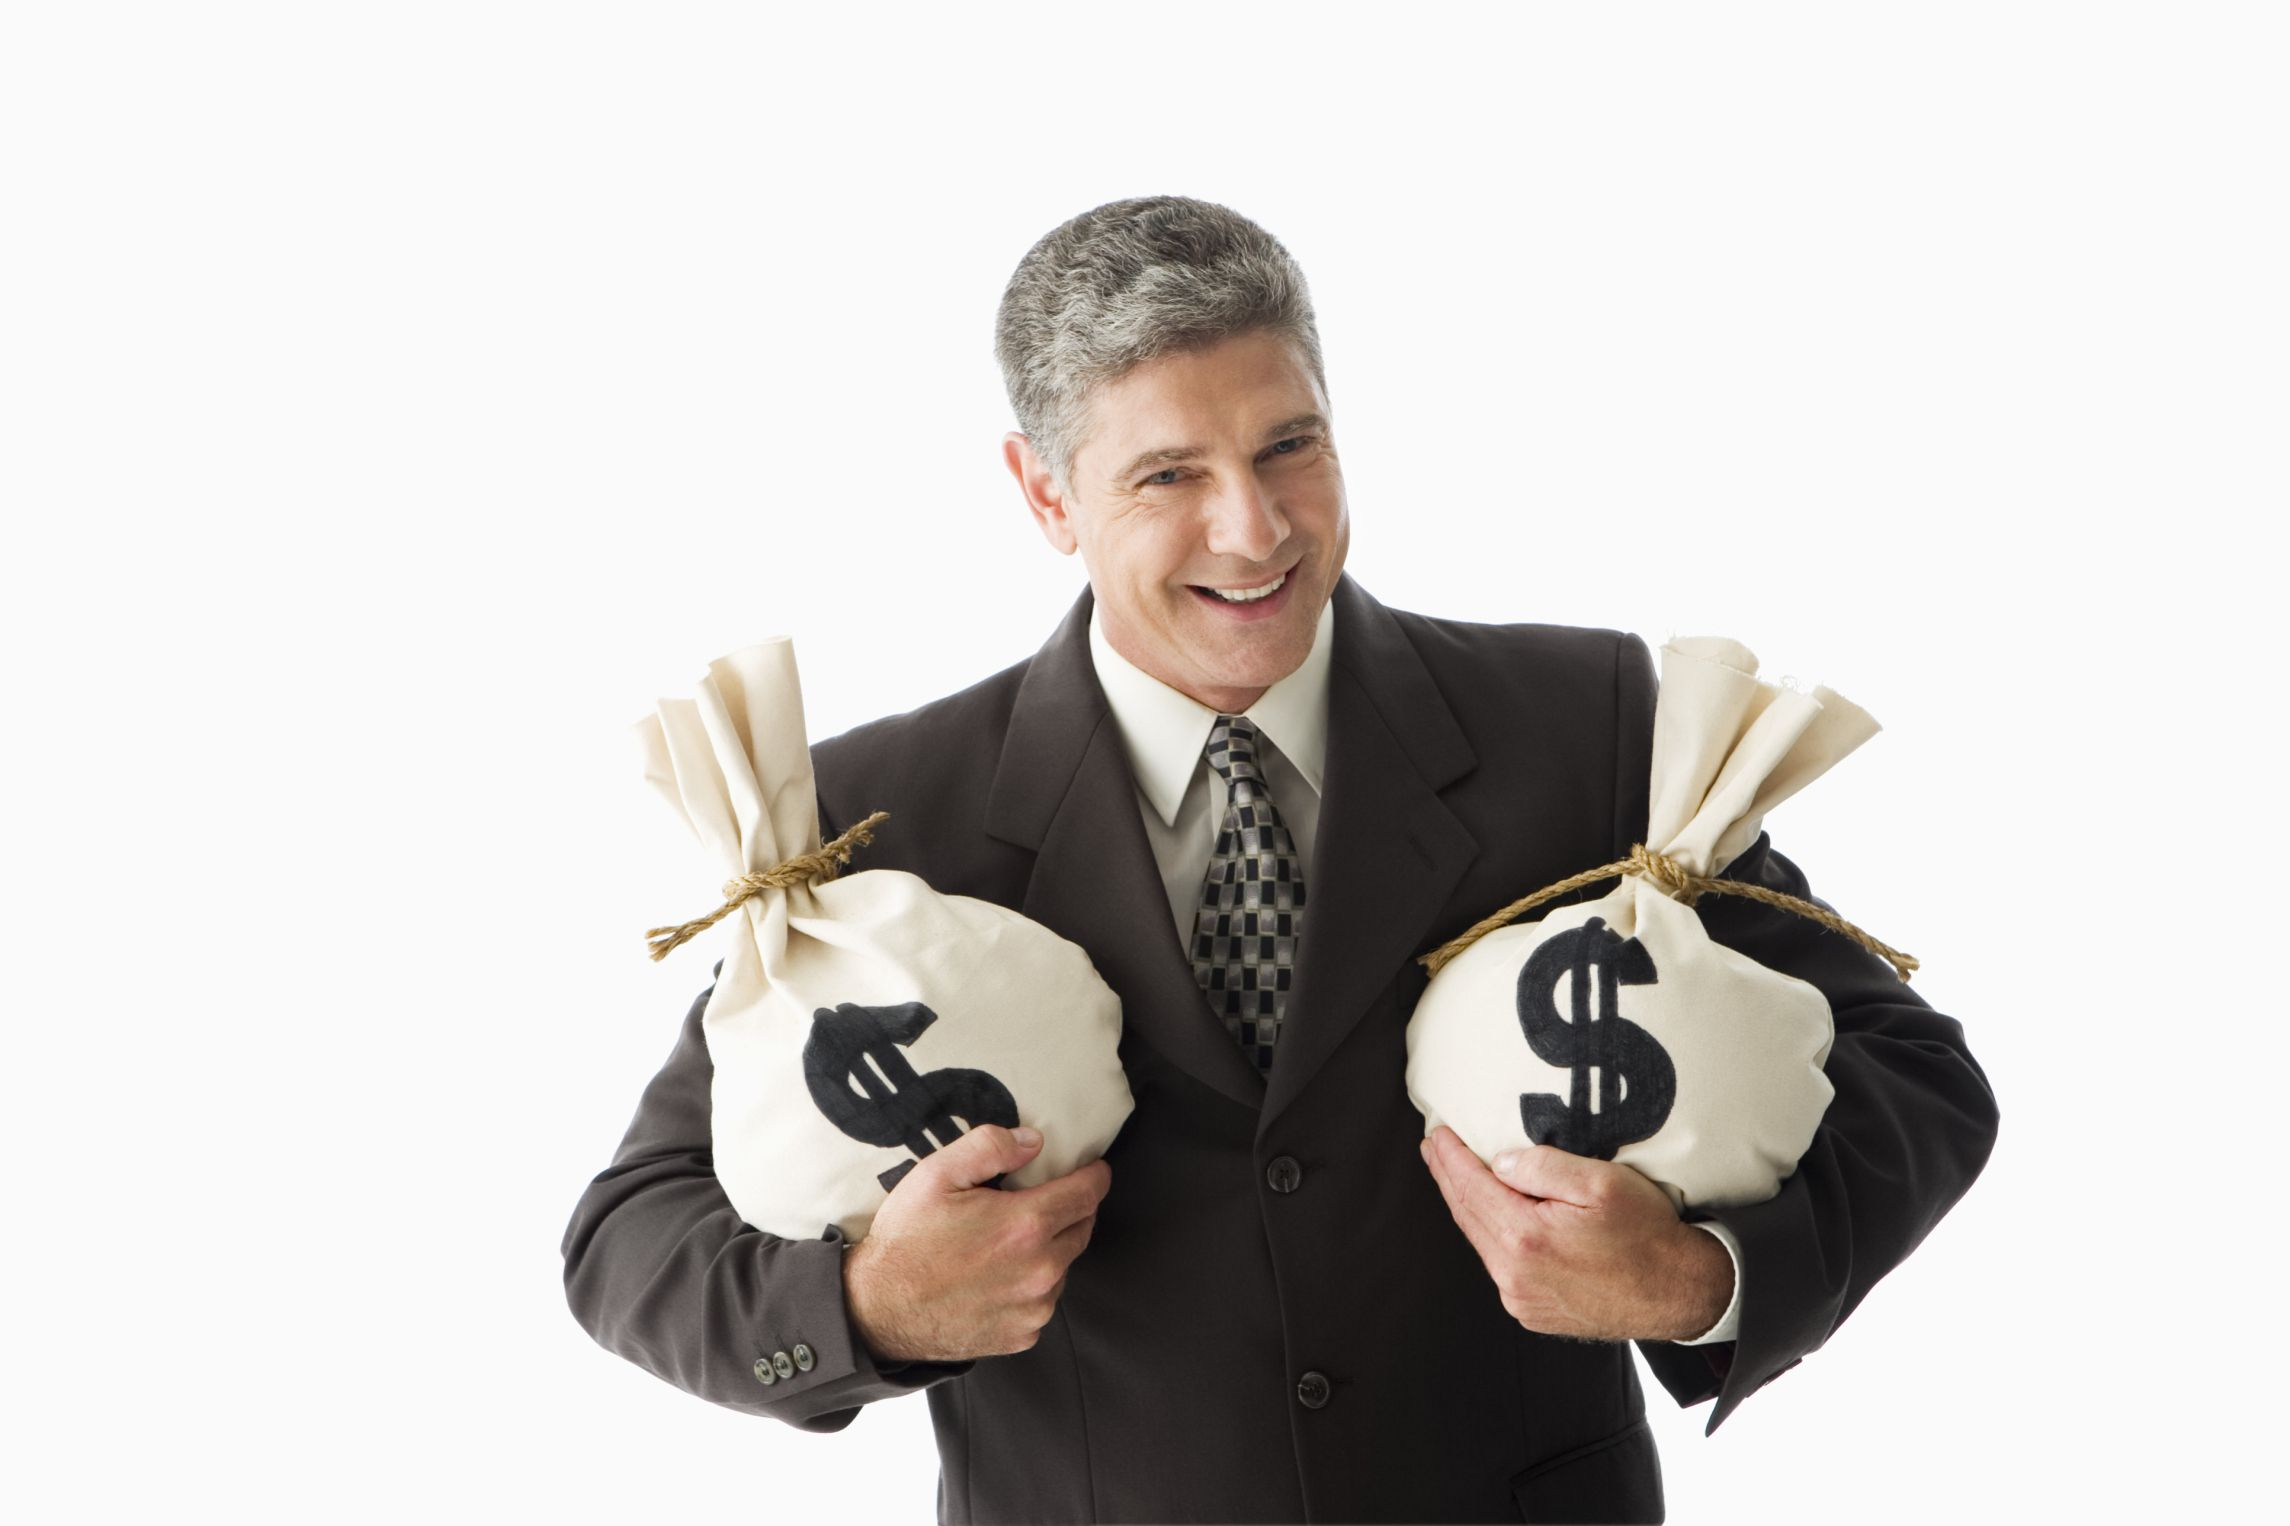 Smiling businessman holding money bags